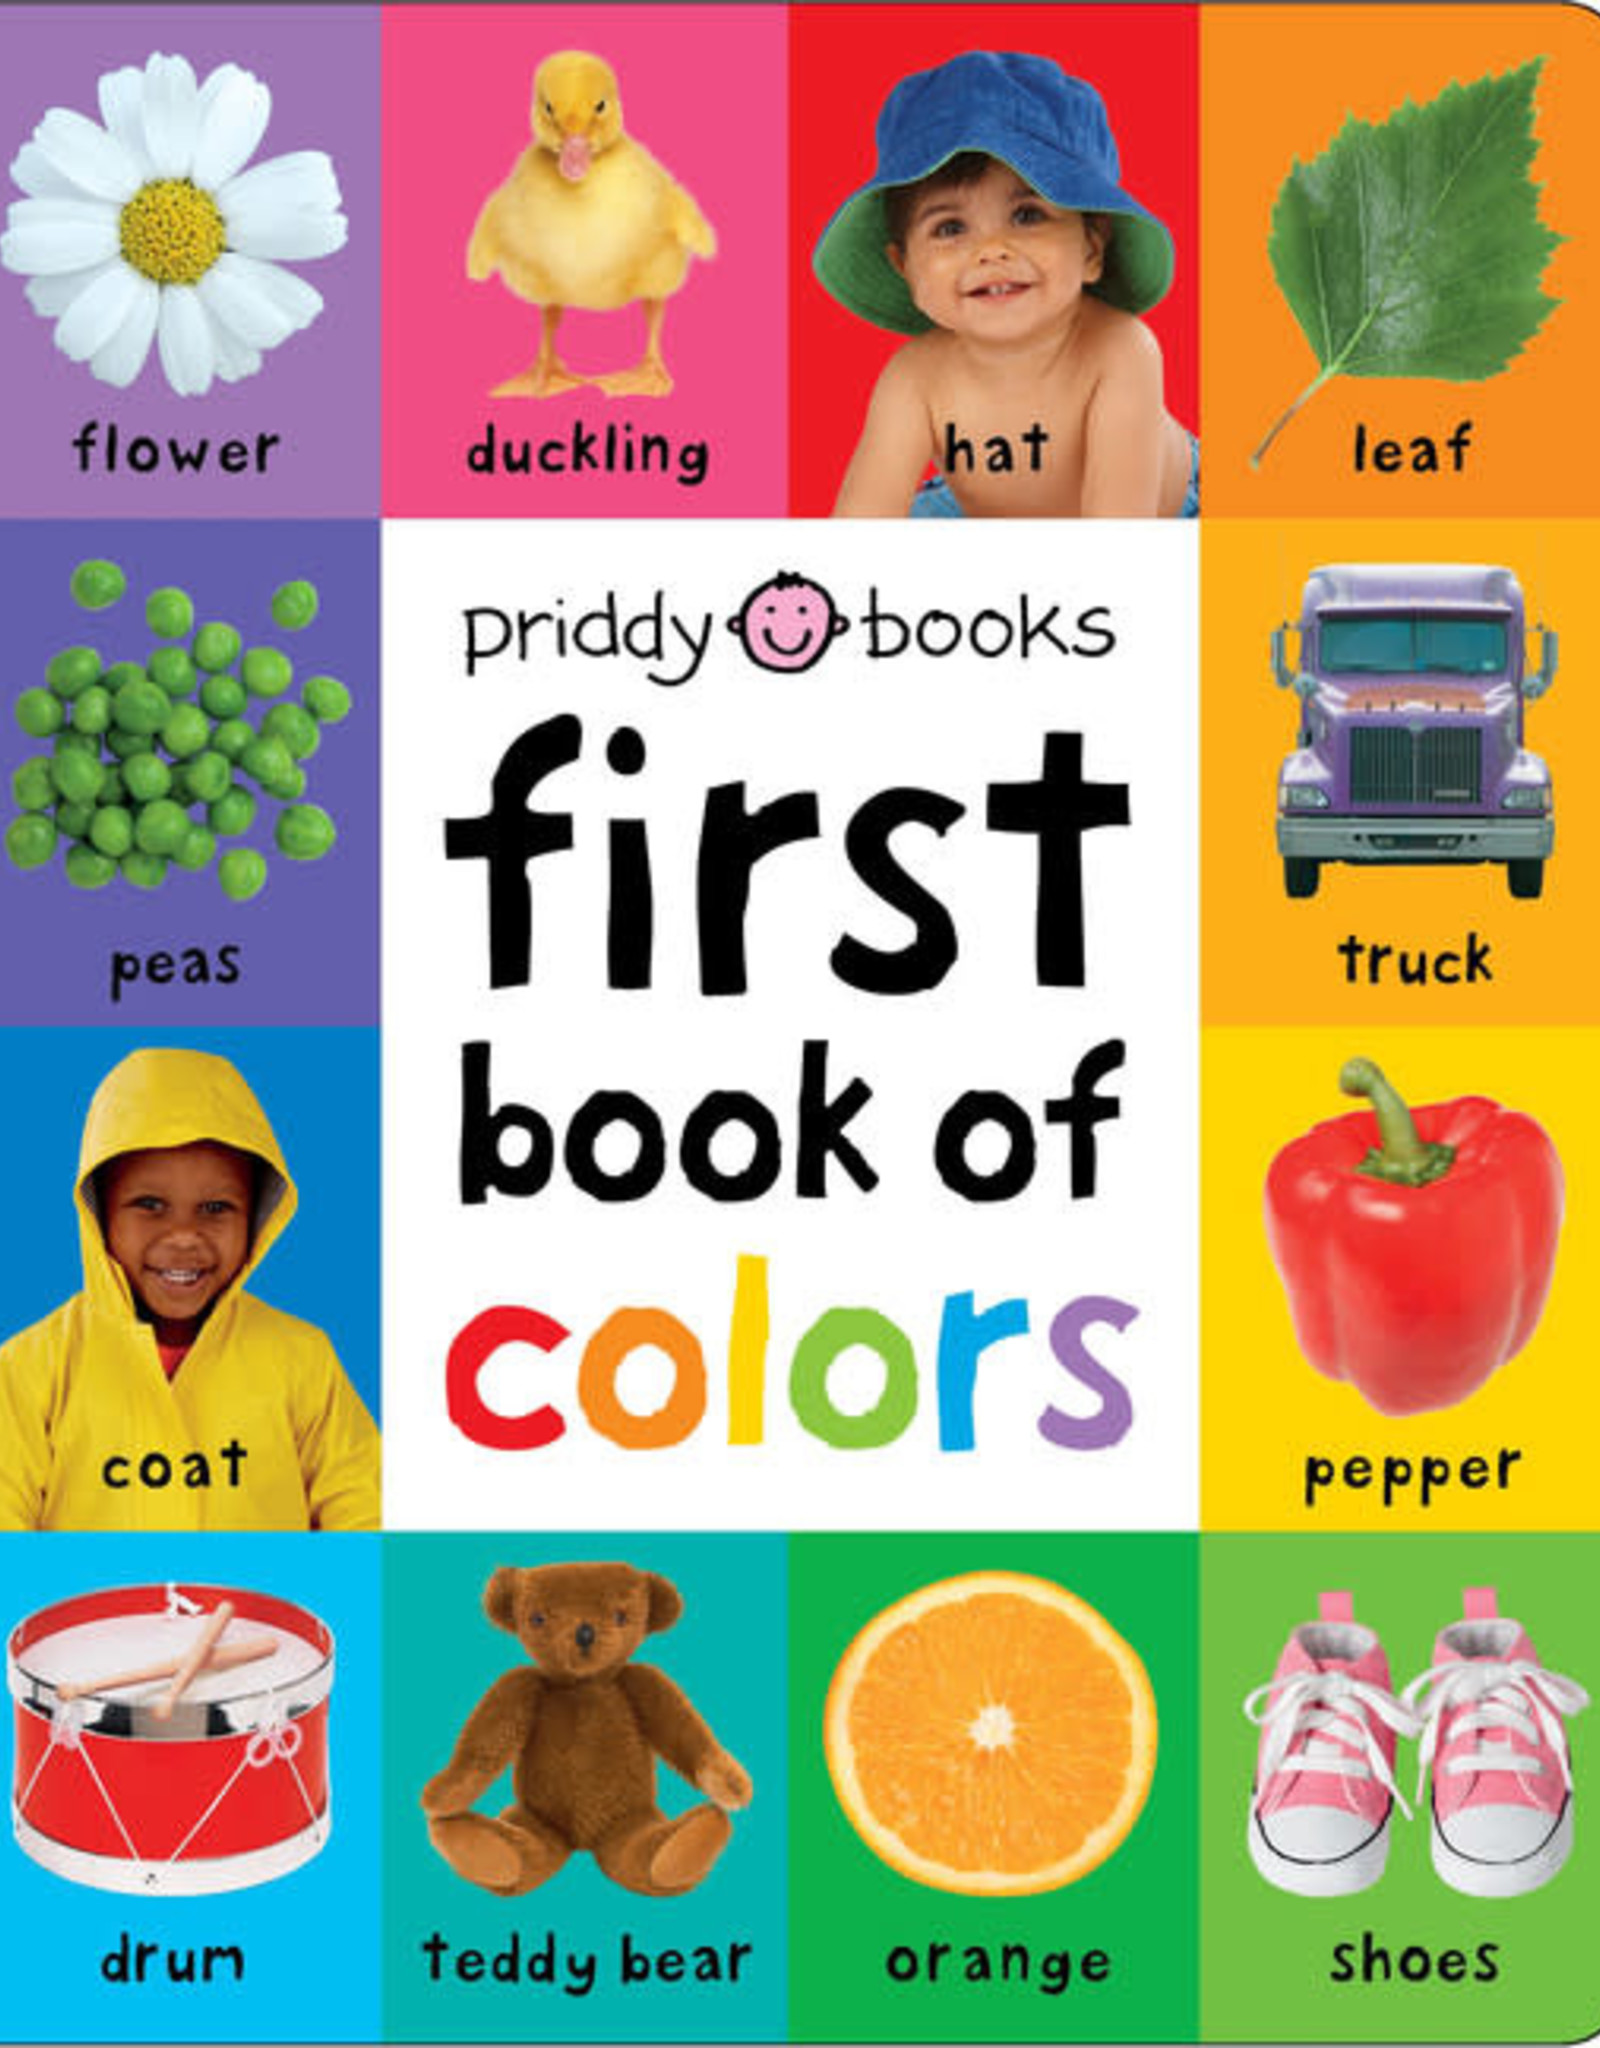 Priddy Books First Book of Colors